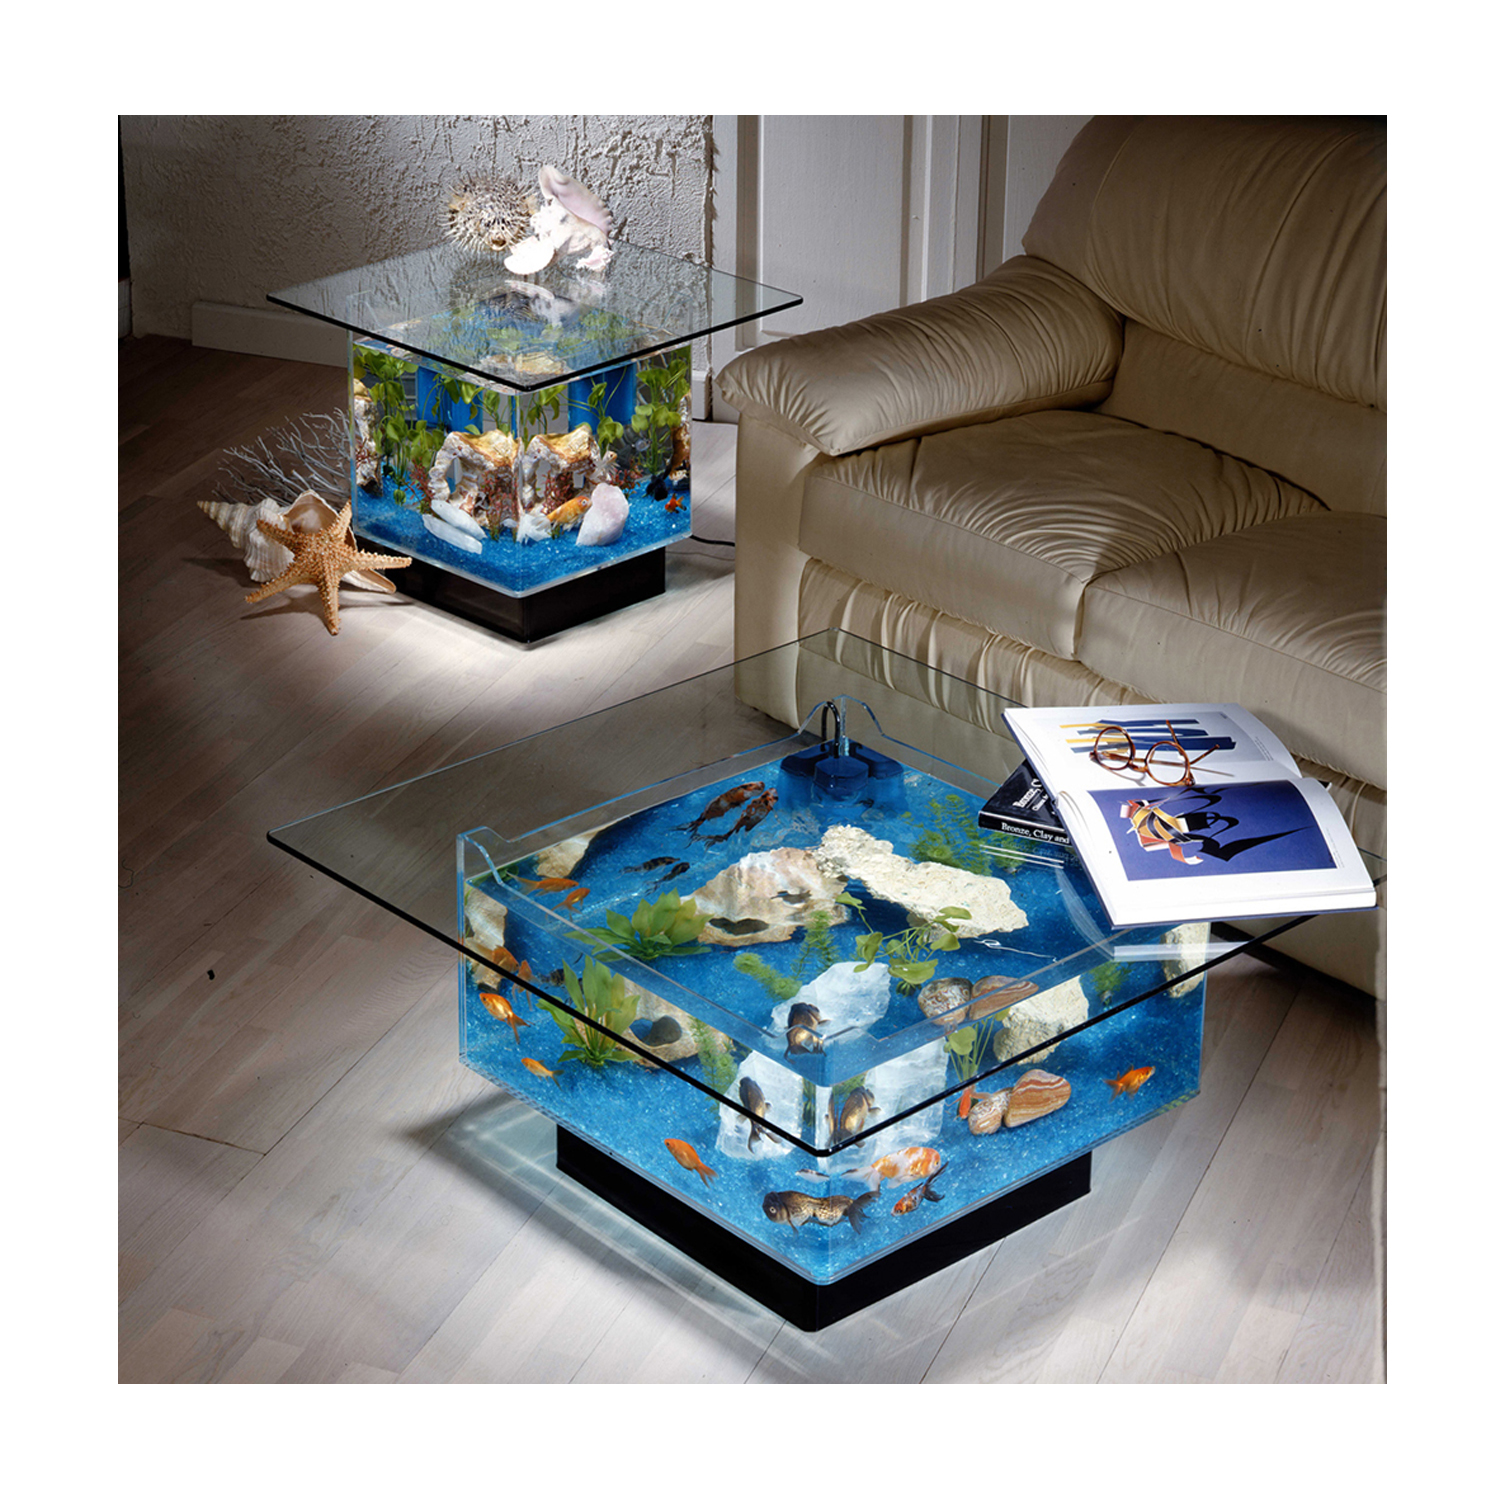 - AQUARIUM COFFEE TABLE - Didn't Know I Wanted That